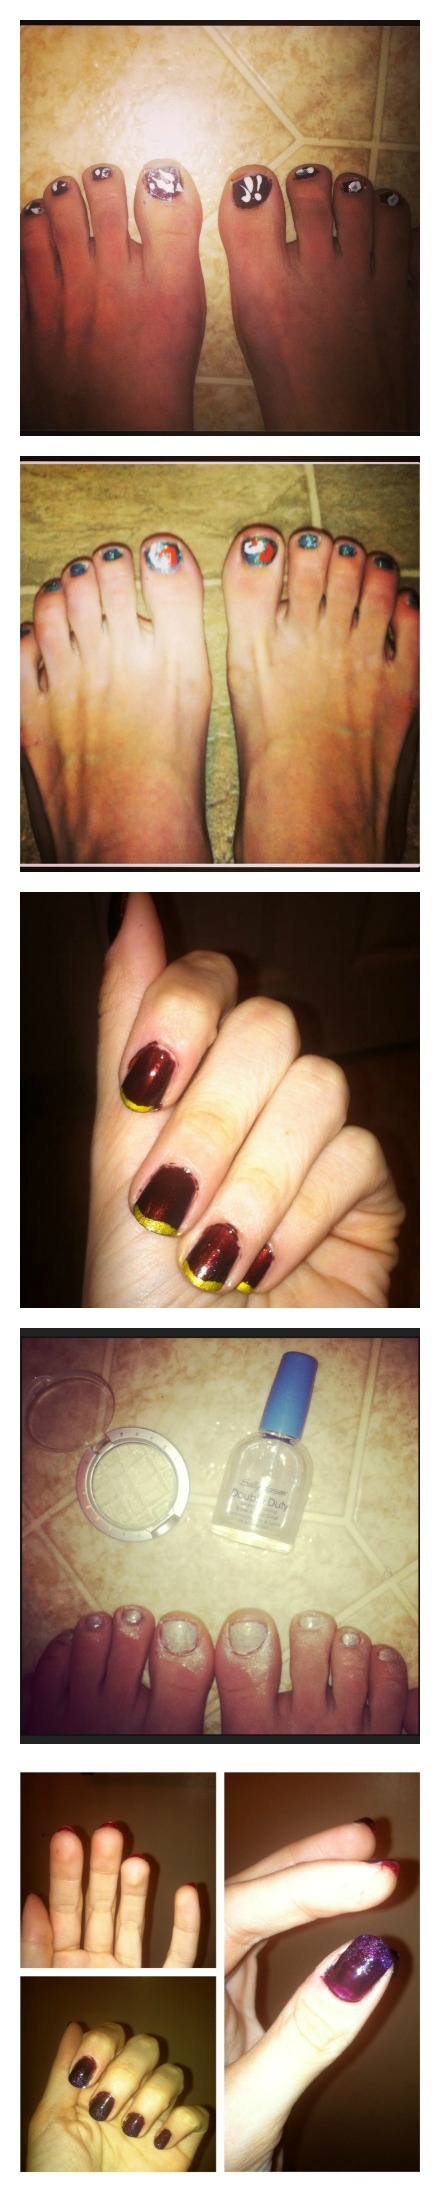 Let art inspire your nails! 1) Splatter paint Pollock style, 2) draw swirls with toothpicks like Van Gogh, 3) Use a gold sharpie to draw any designs you want [it comes off easily], 4) Make your own polish by adding eyeshadow to clear topcoat, 5) get trendy by painting the underside of nail red [Louboutin] and the top an ombre shade [sparkles make it easy]. Done!